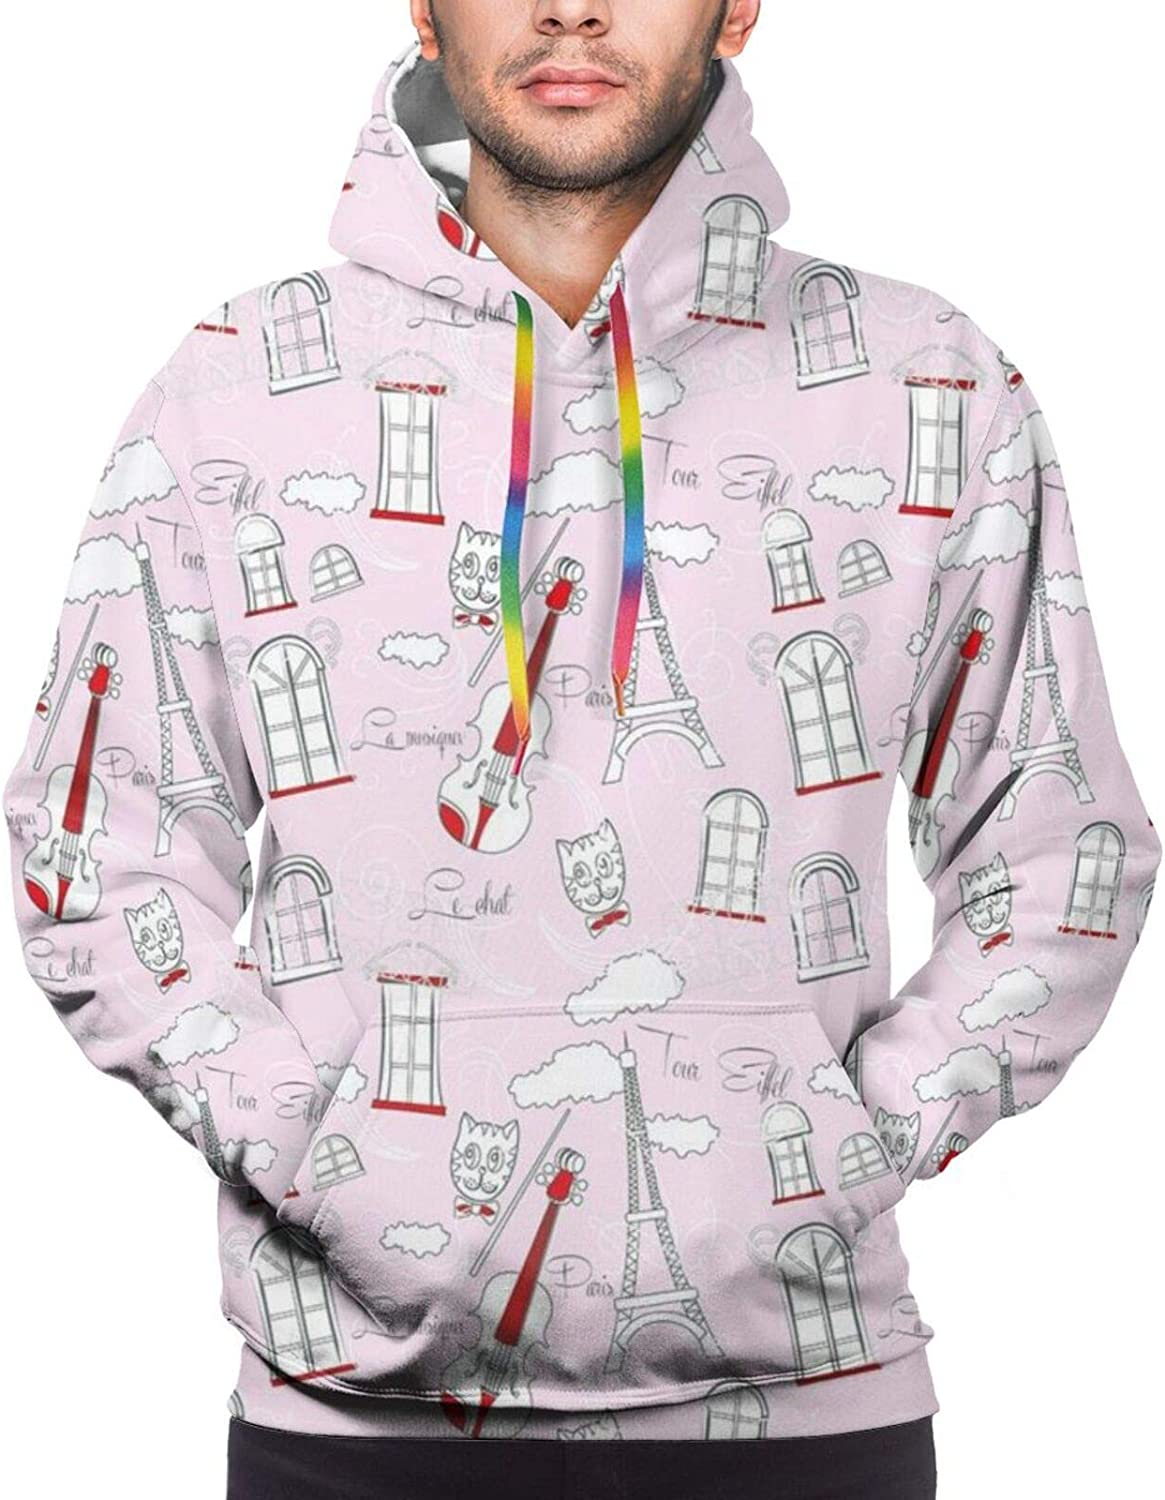 Men's Hoodies Sweatshirts,Abstract Circular Figures with Stripes Background Vintage Graphic Artistic Design